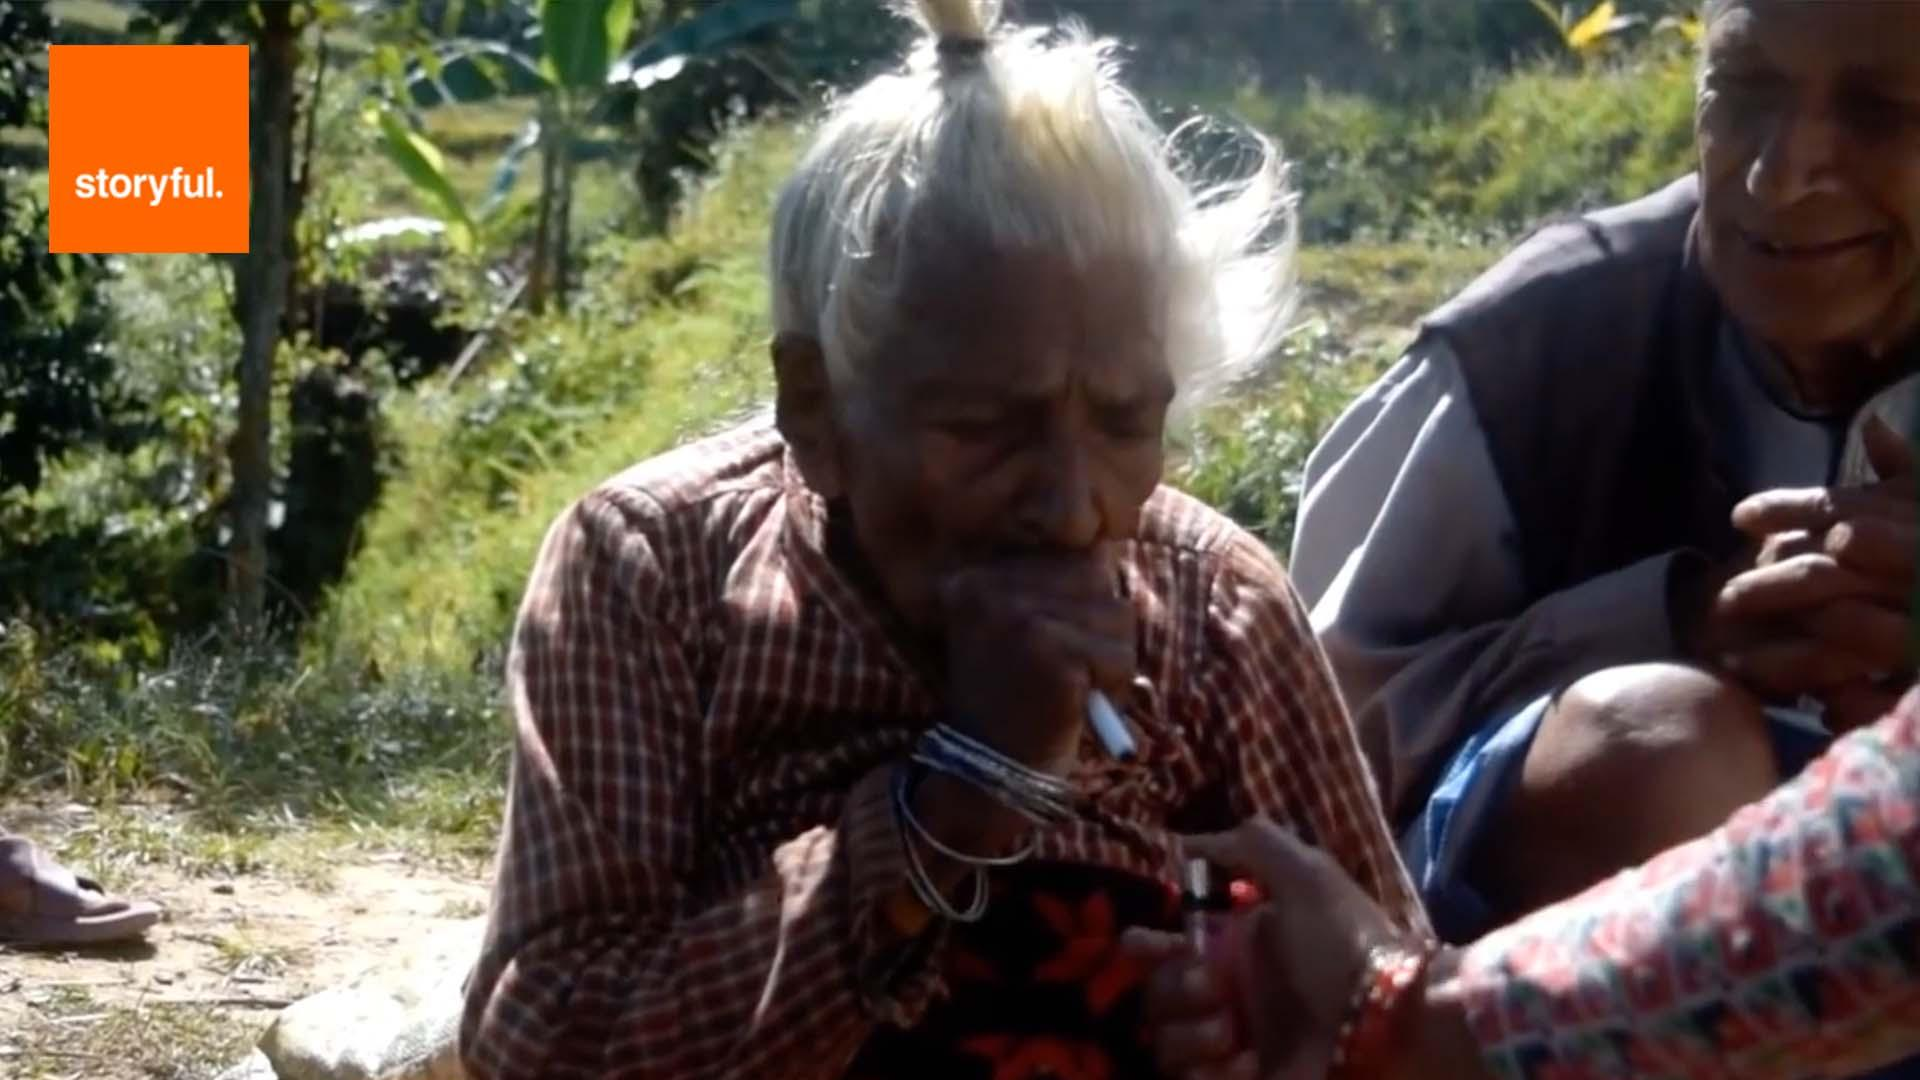 112-Year-Old Woman Is Still Fit And Active, Despite Smoking 30 Cigarettes Every Day For The Past 95 Years